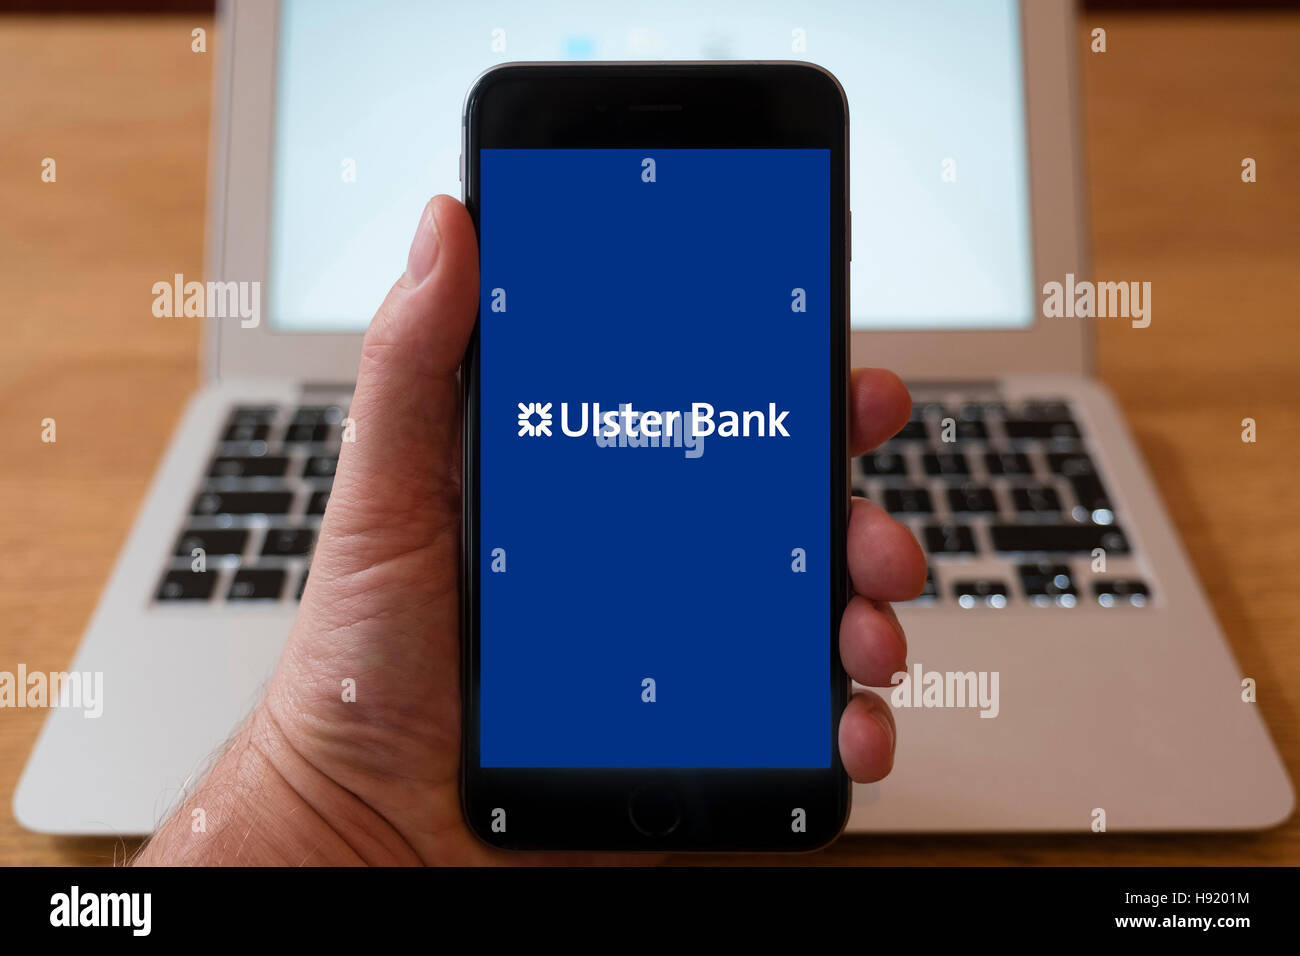 Using iPhone smart phone to display website logo of Ulster Bank - Stock Image